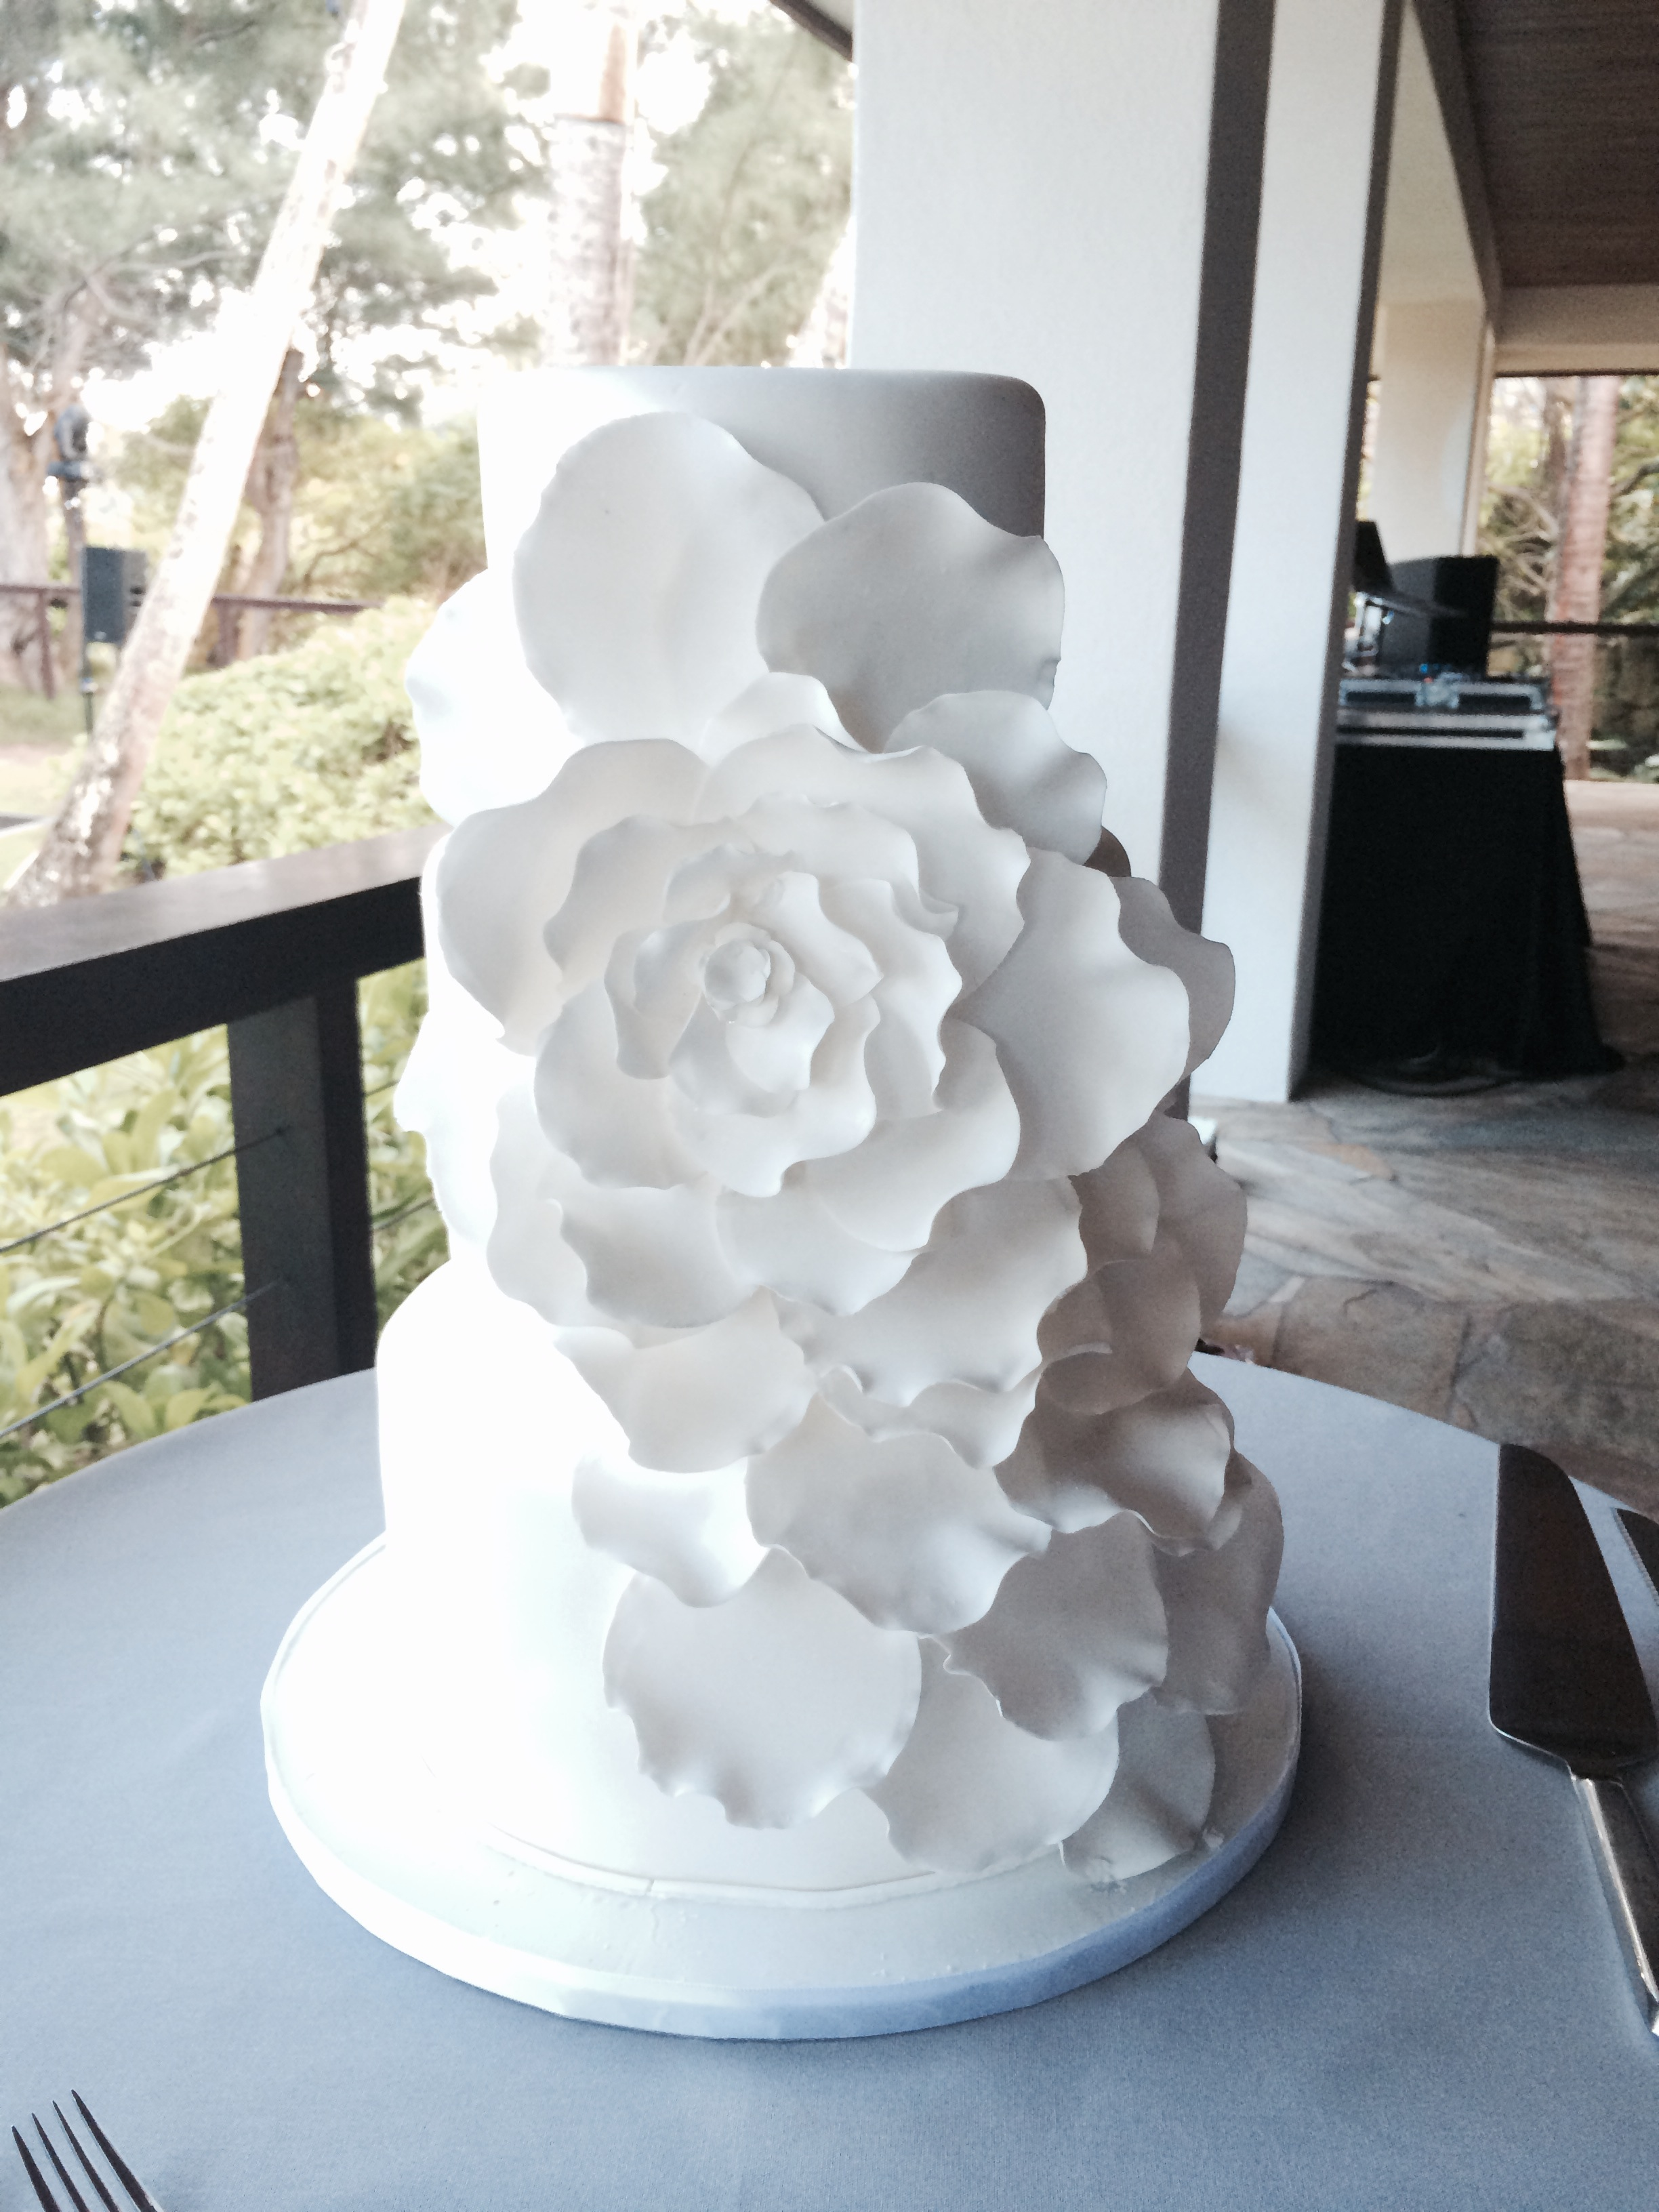 Blog | A Cake Life | Hawaii Wedding Cakes | Best Wedding Cake Design ...